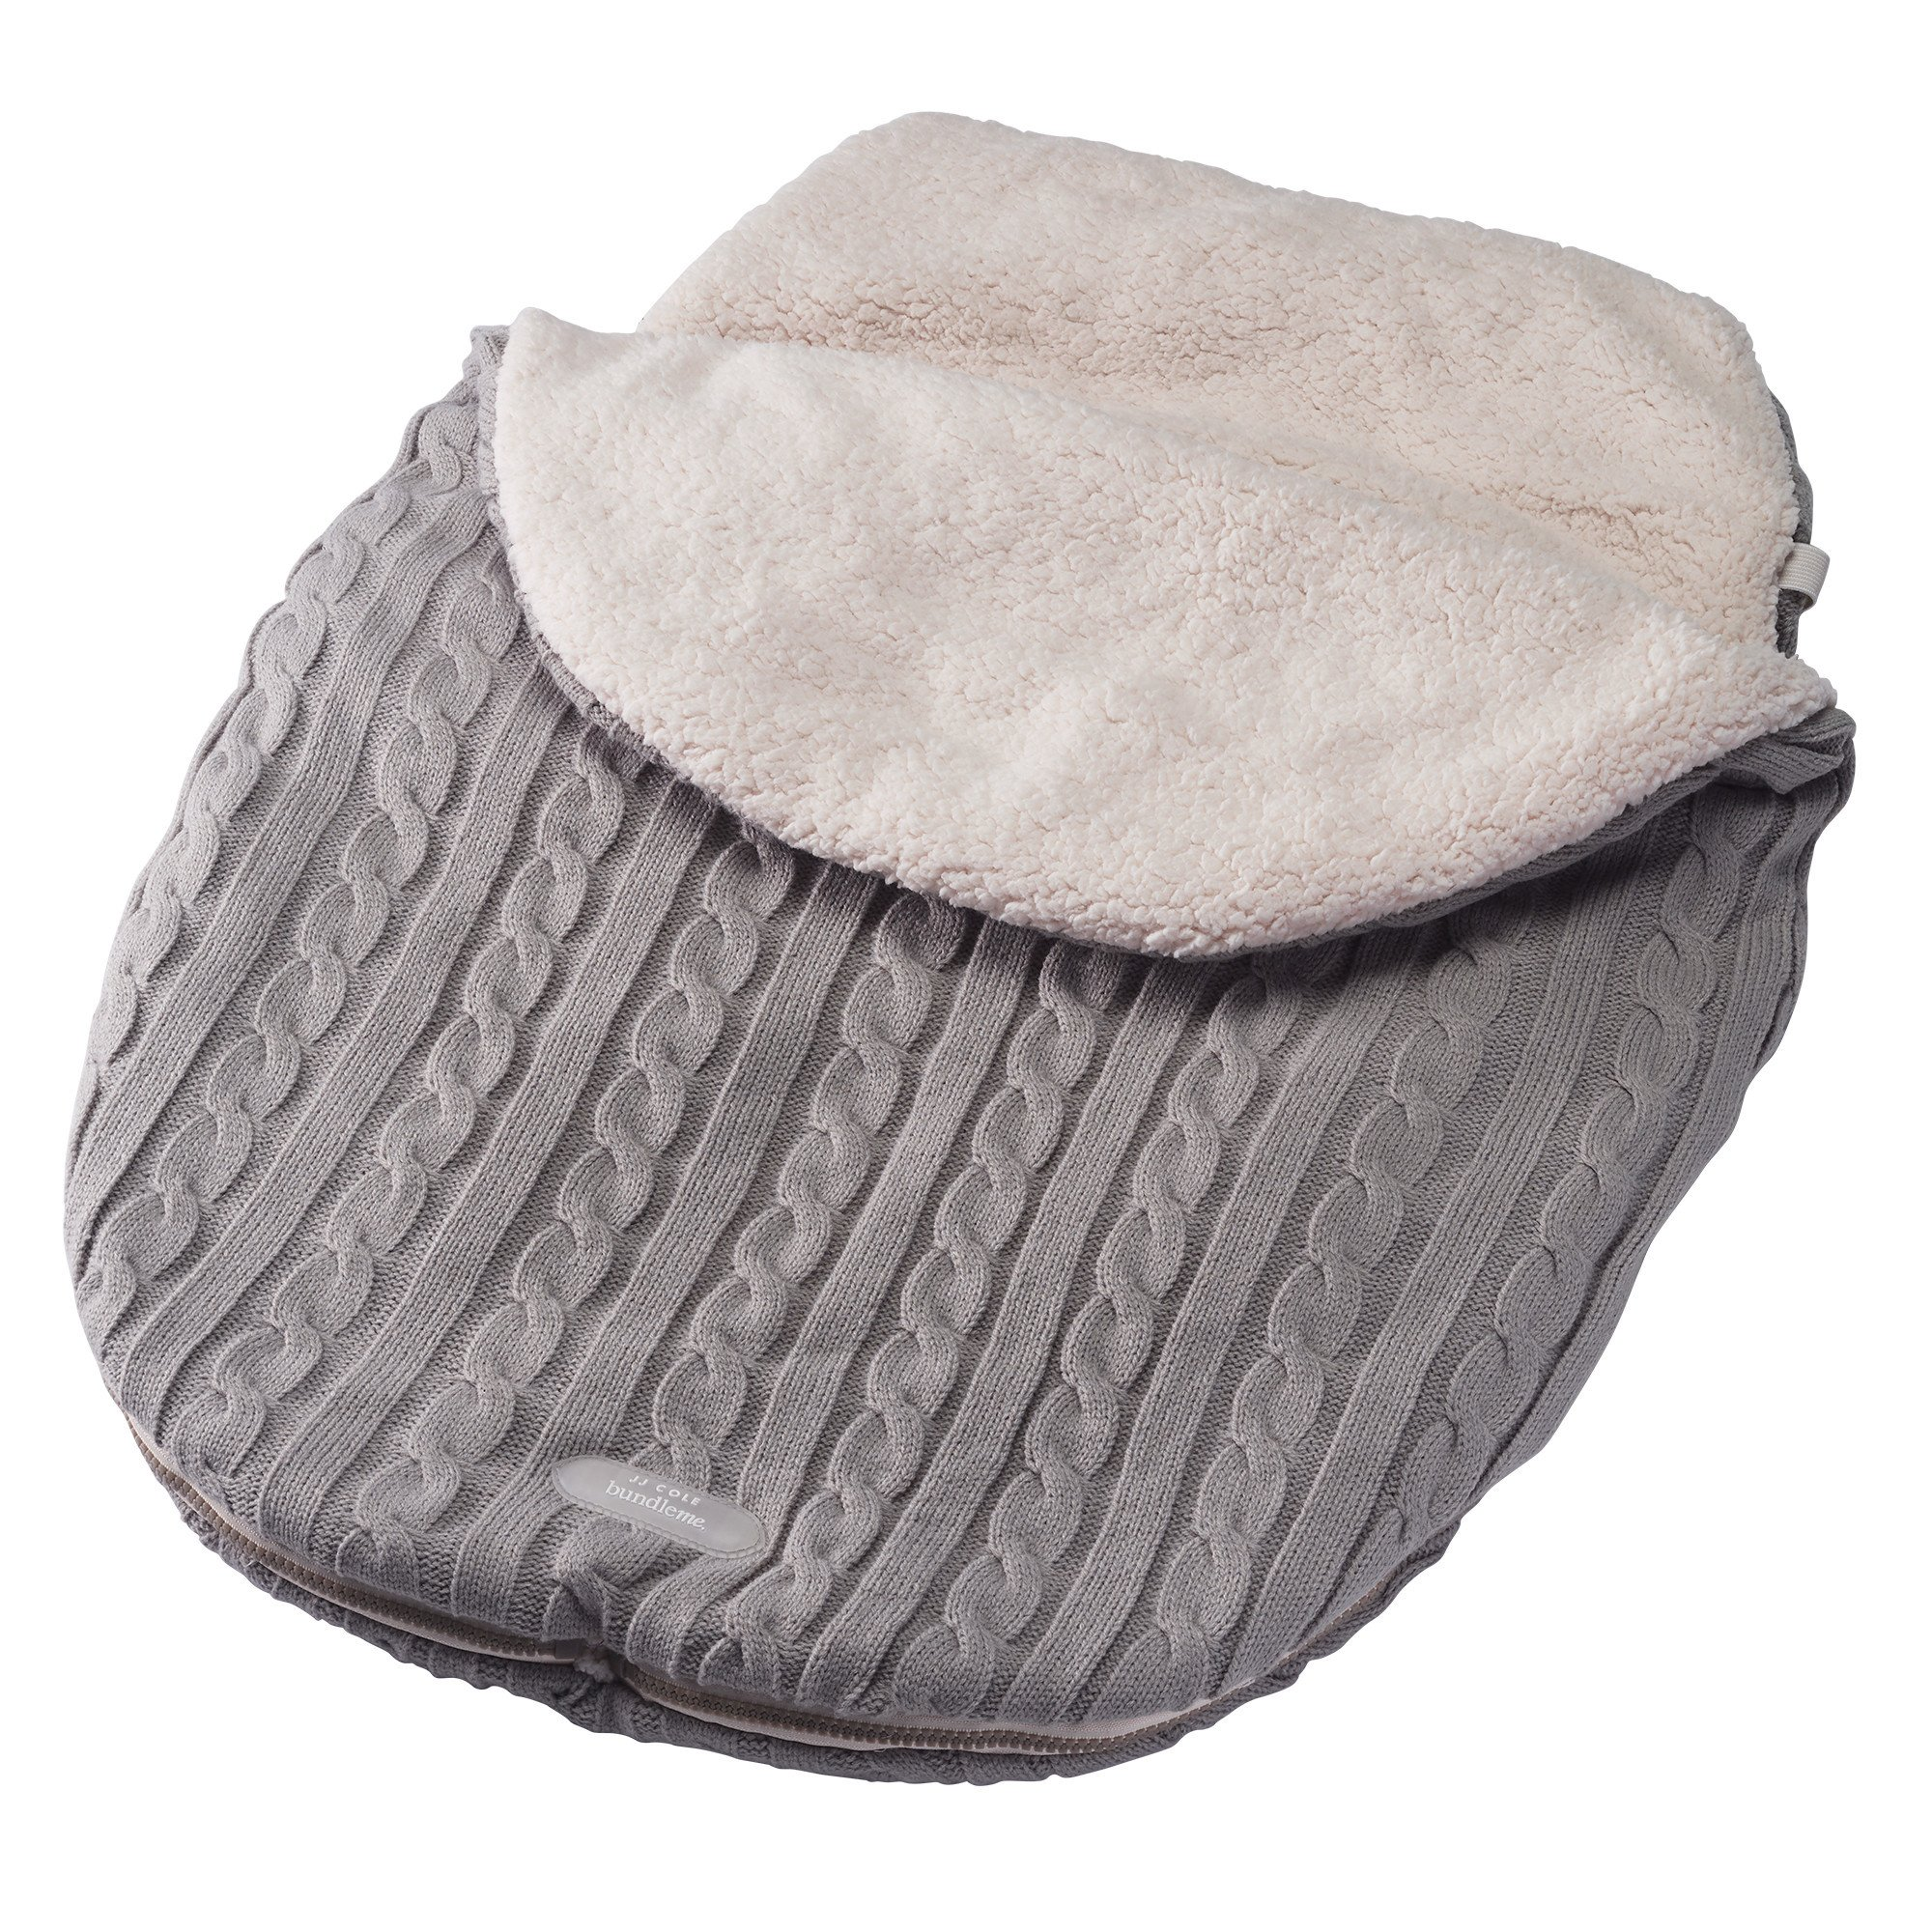 JJ Cole - Knit Bundleme Set, Blanket Cover to Protect Baby from Cold Weather with Car Seats and Strollers, Graphite, Birth to 1 Year by JJ Cole (Image #2)